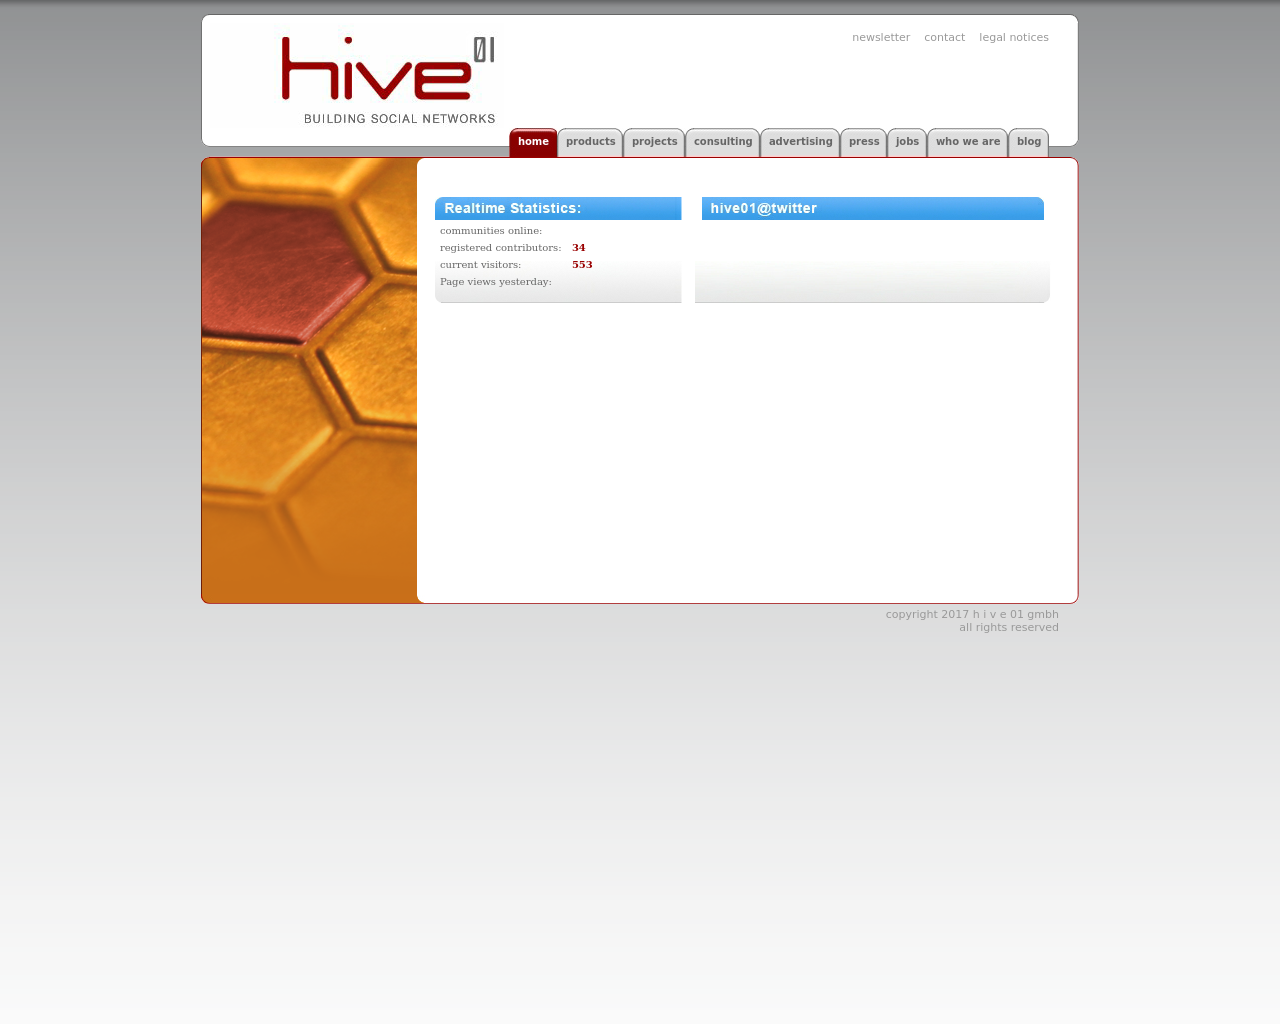 hive-01-Advertising-Reviews-Pricing